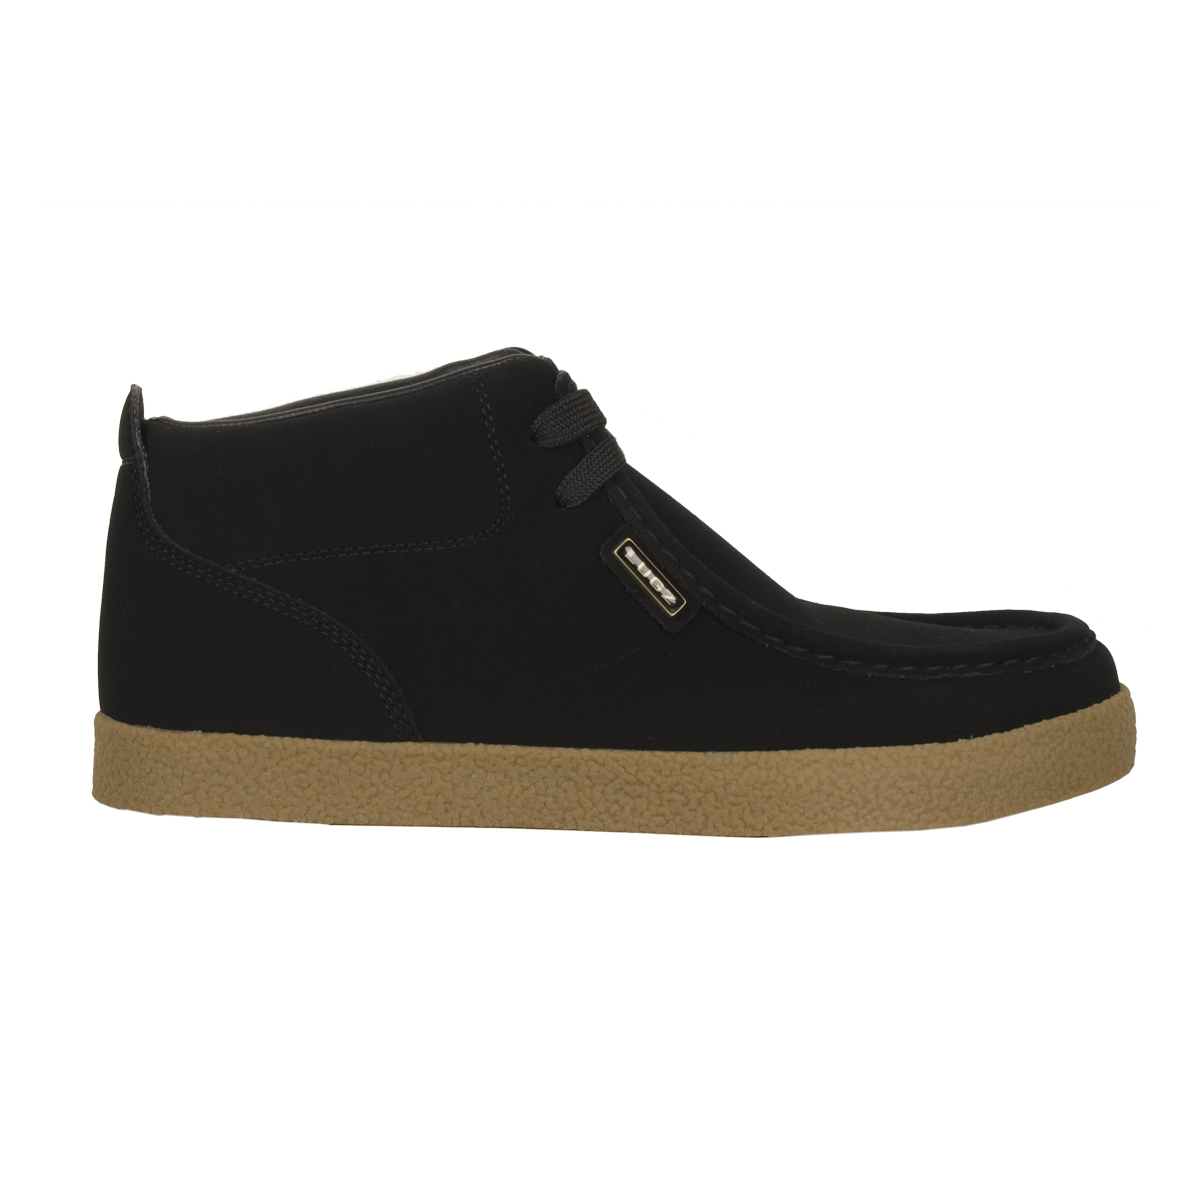 Lugz Strider Crepe Mens Shoe Black/Gum